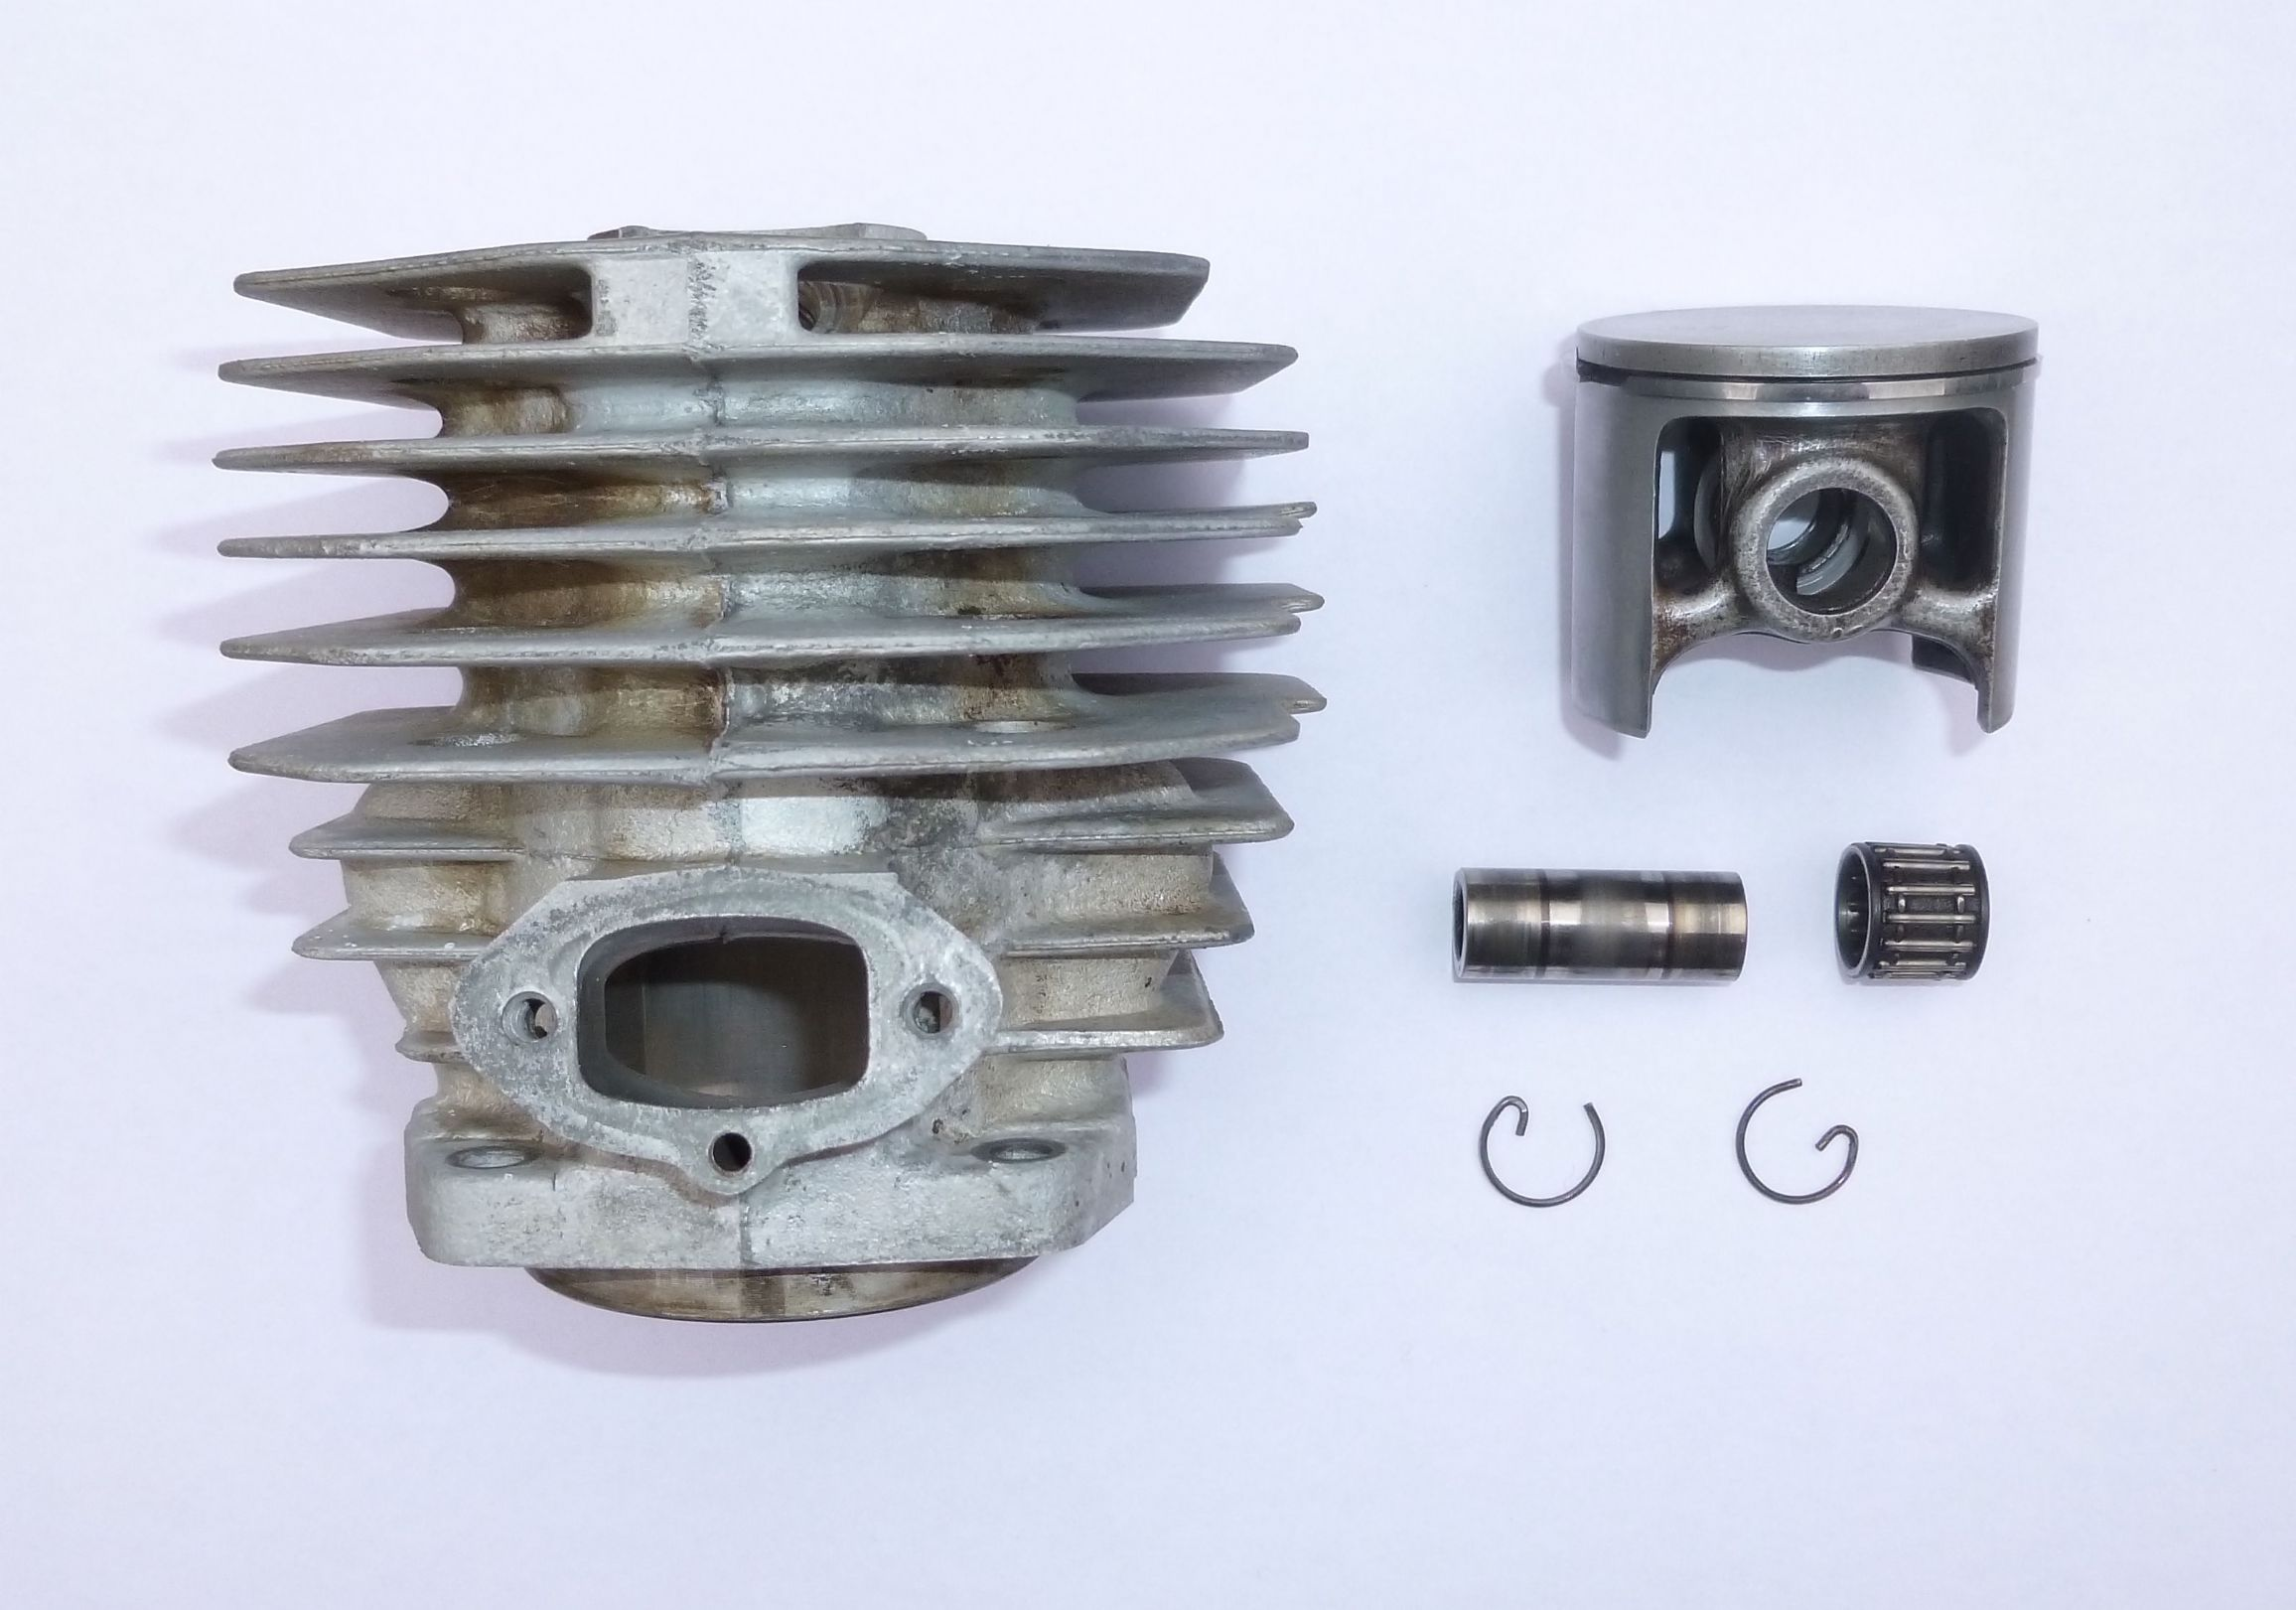 Husqvarna 254 254se 254sg 254xp 254xpg Chainsaw Cylinder And Piston Sg Wiring Harness Uk Kit Complete Part No 503 50 39 03 01 44 13